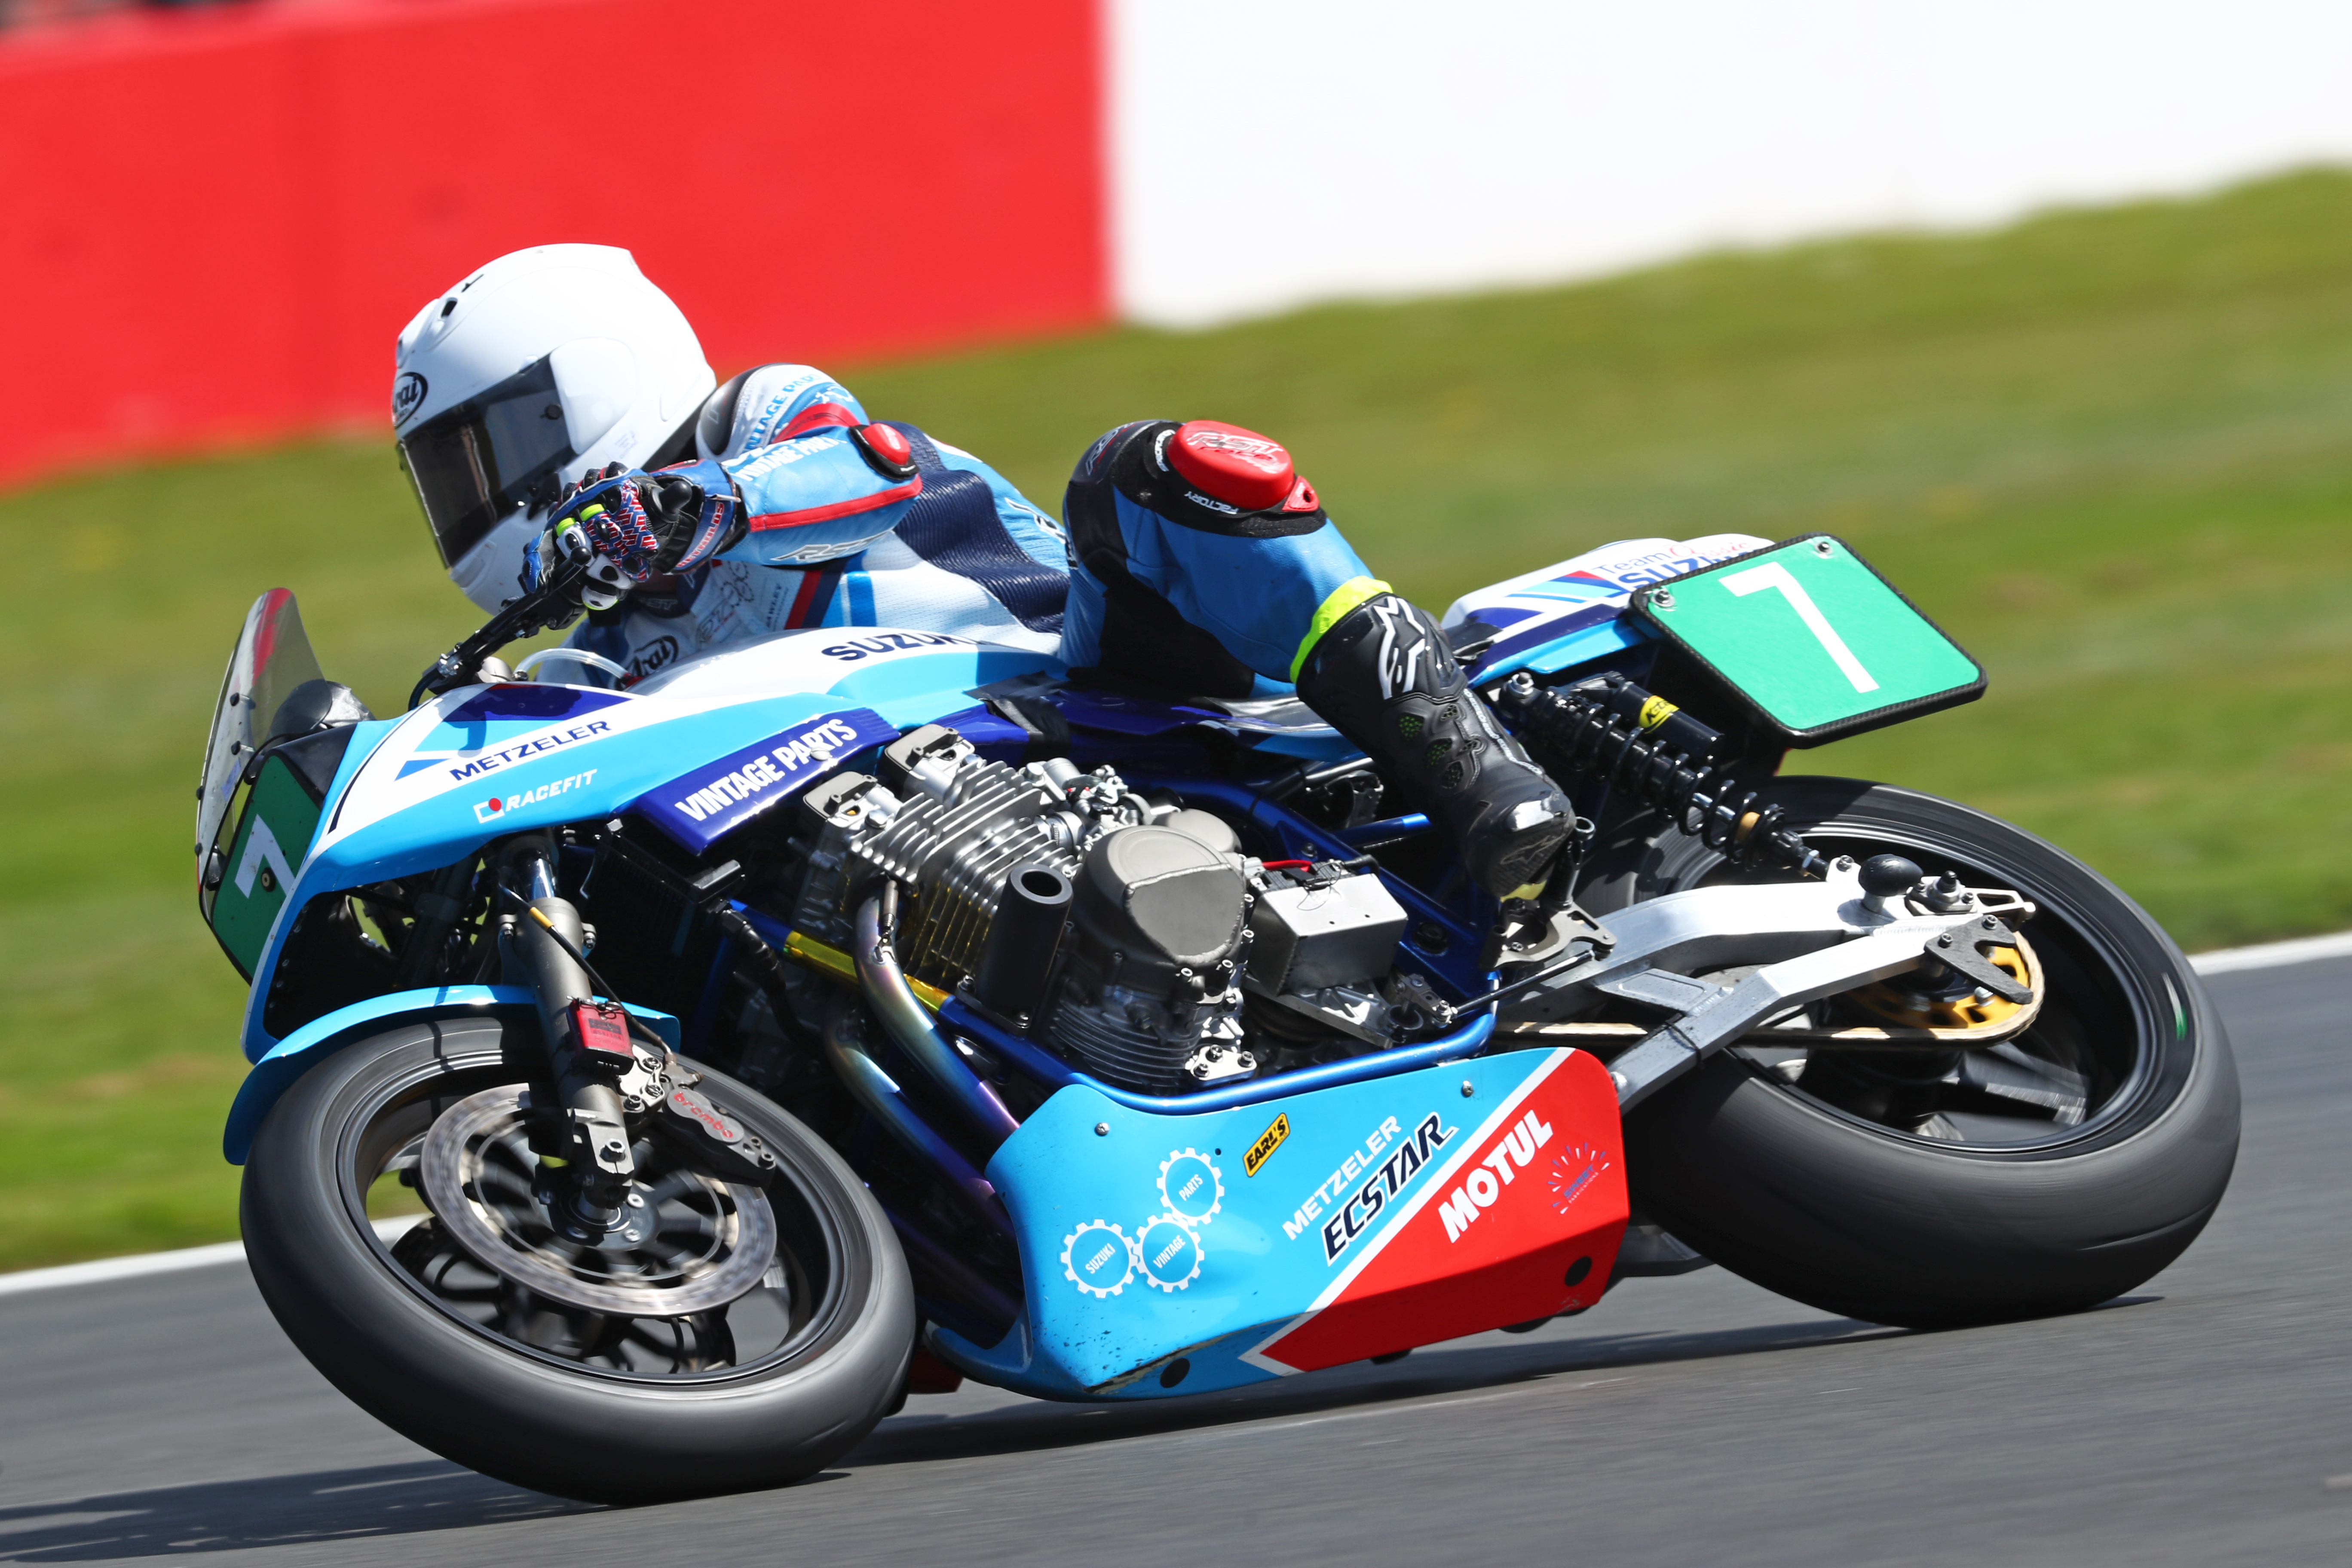 Retirement robs Team Classic Suzuki of shot at victory as